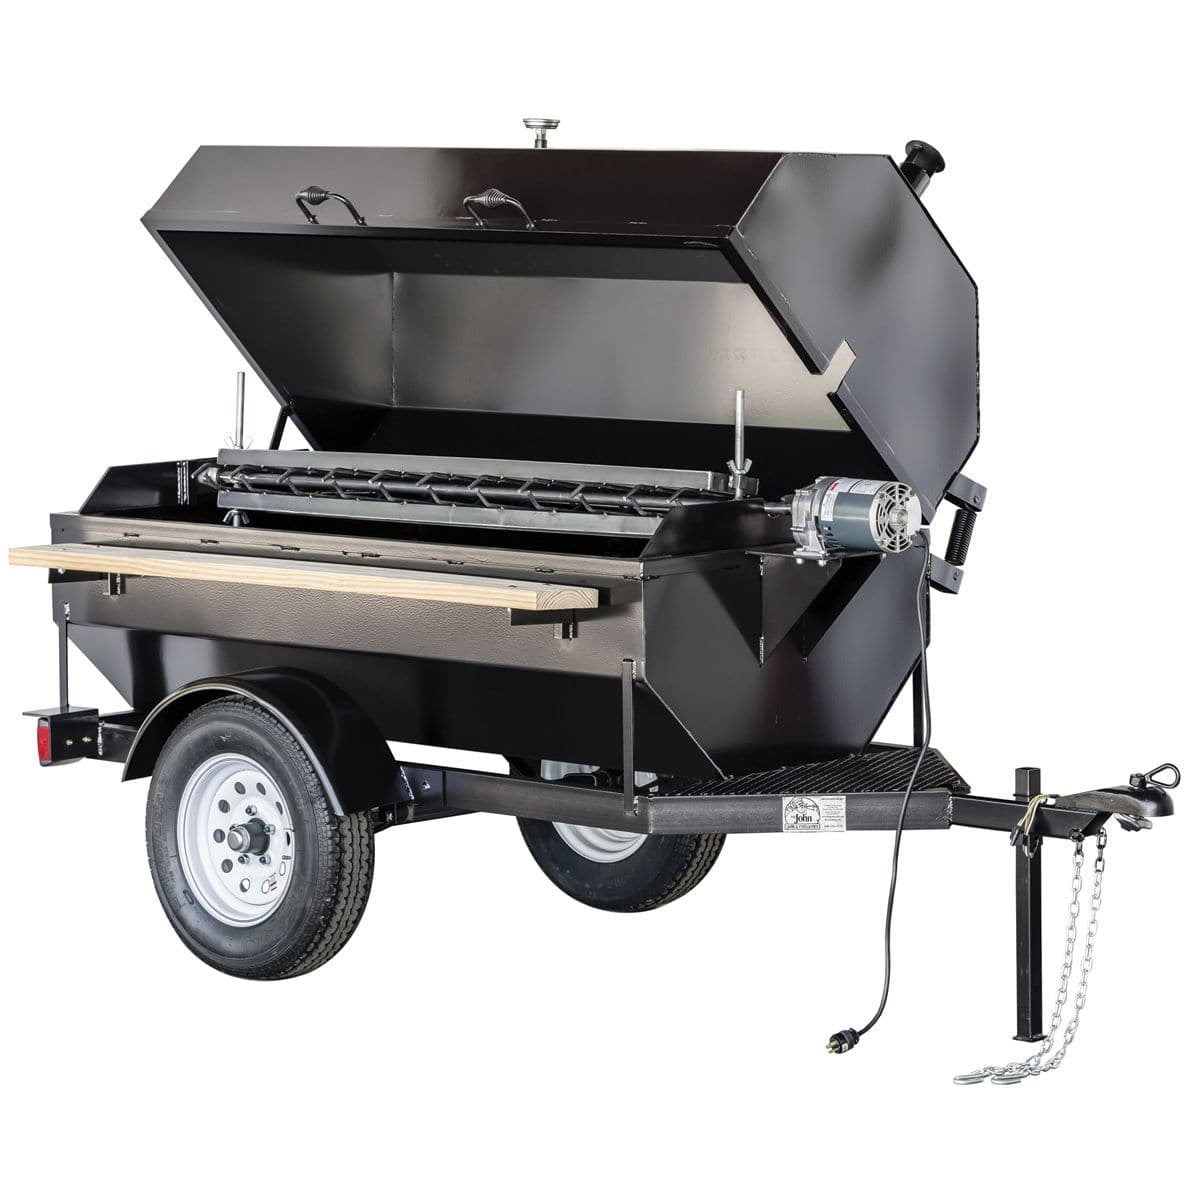 Charcoal barbecue steel commercial 6sdr